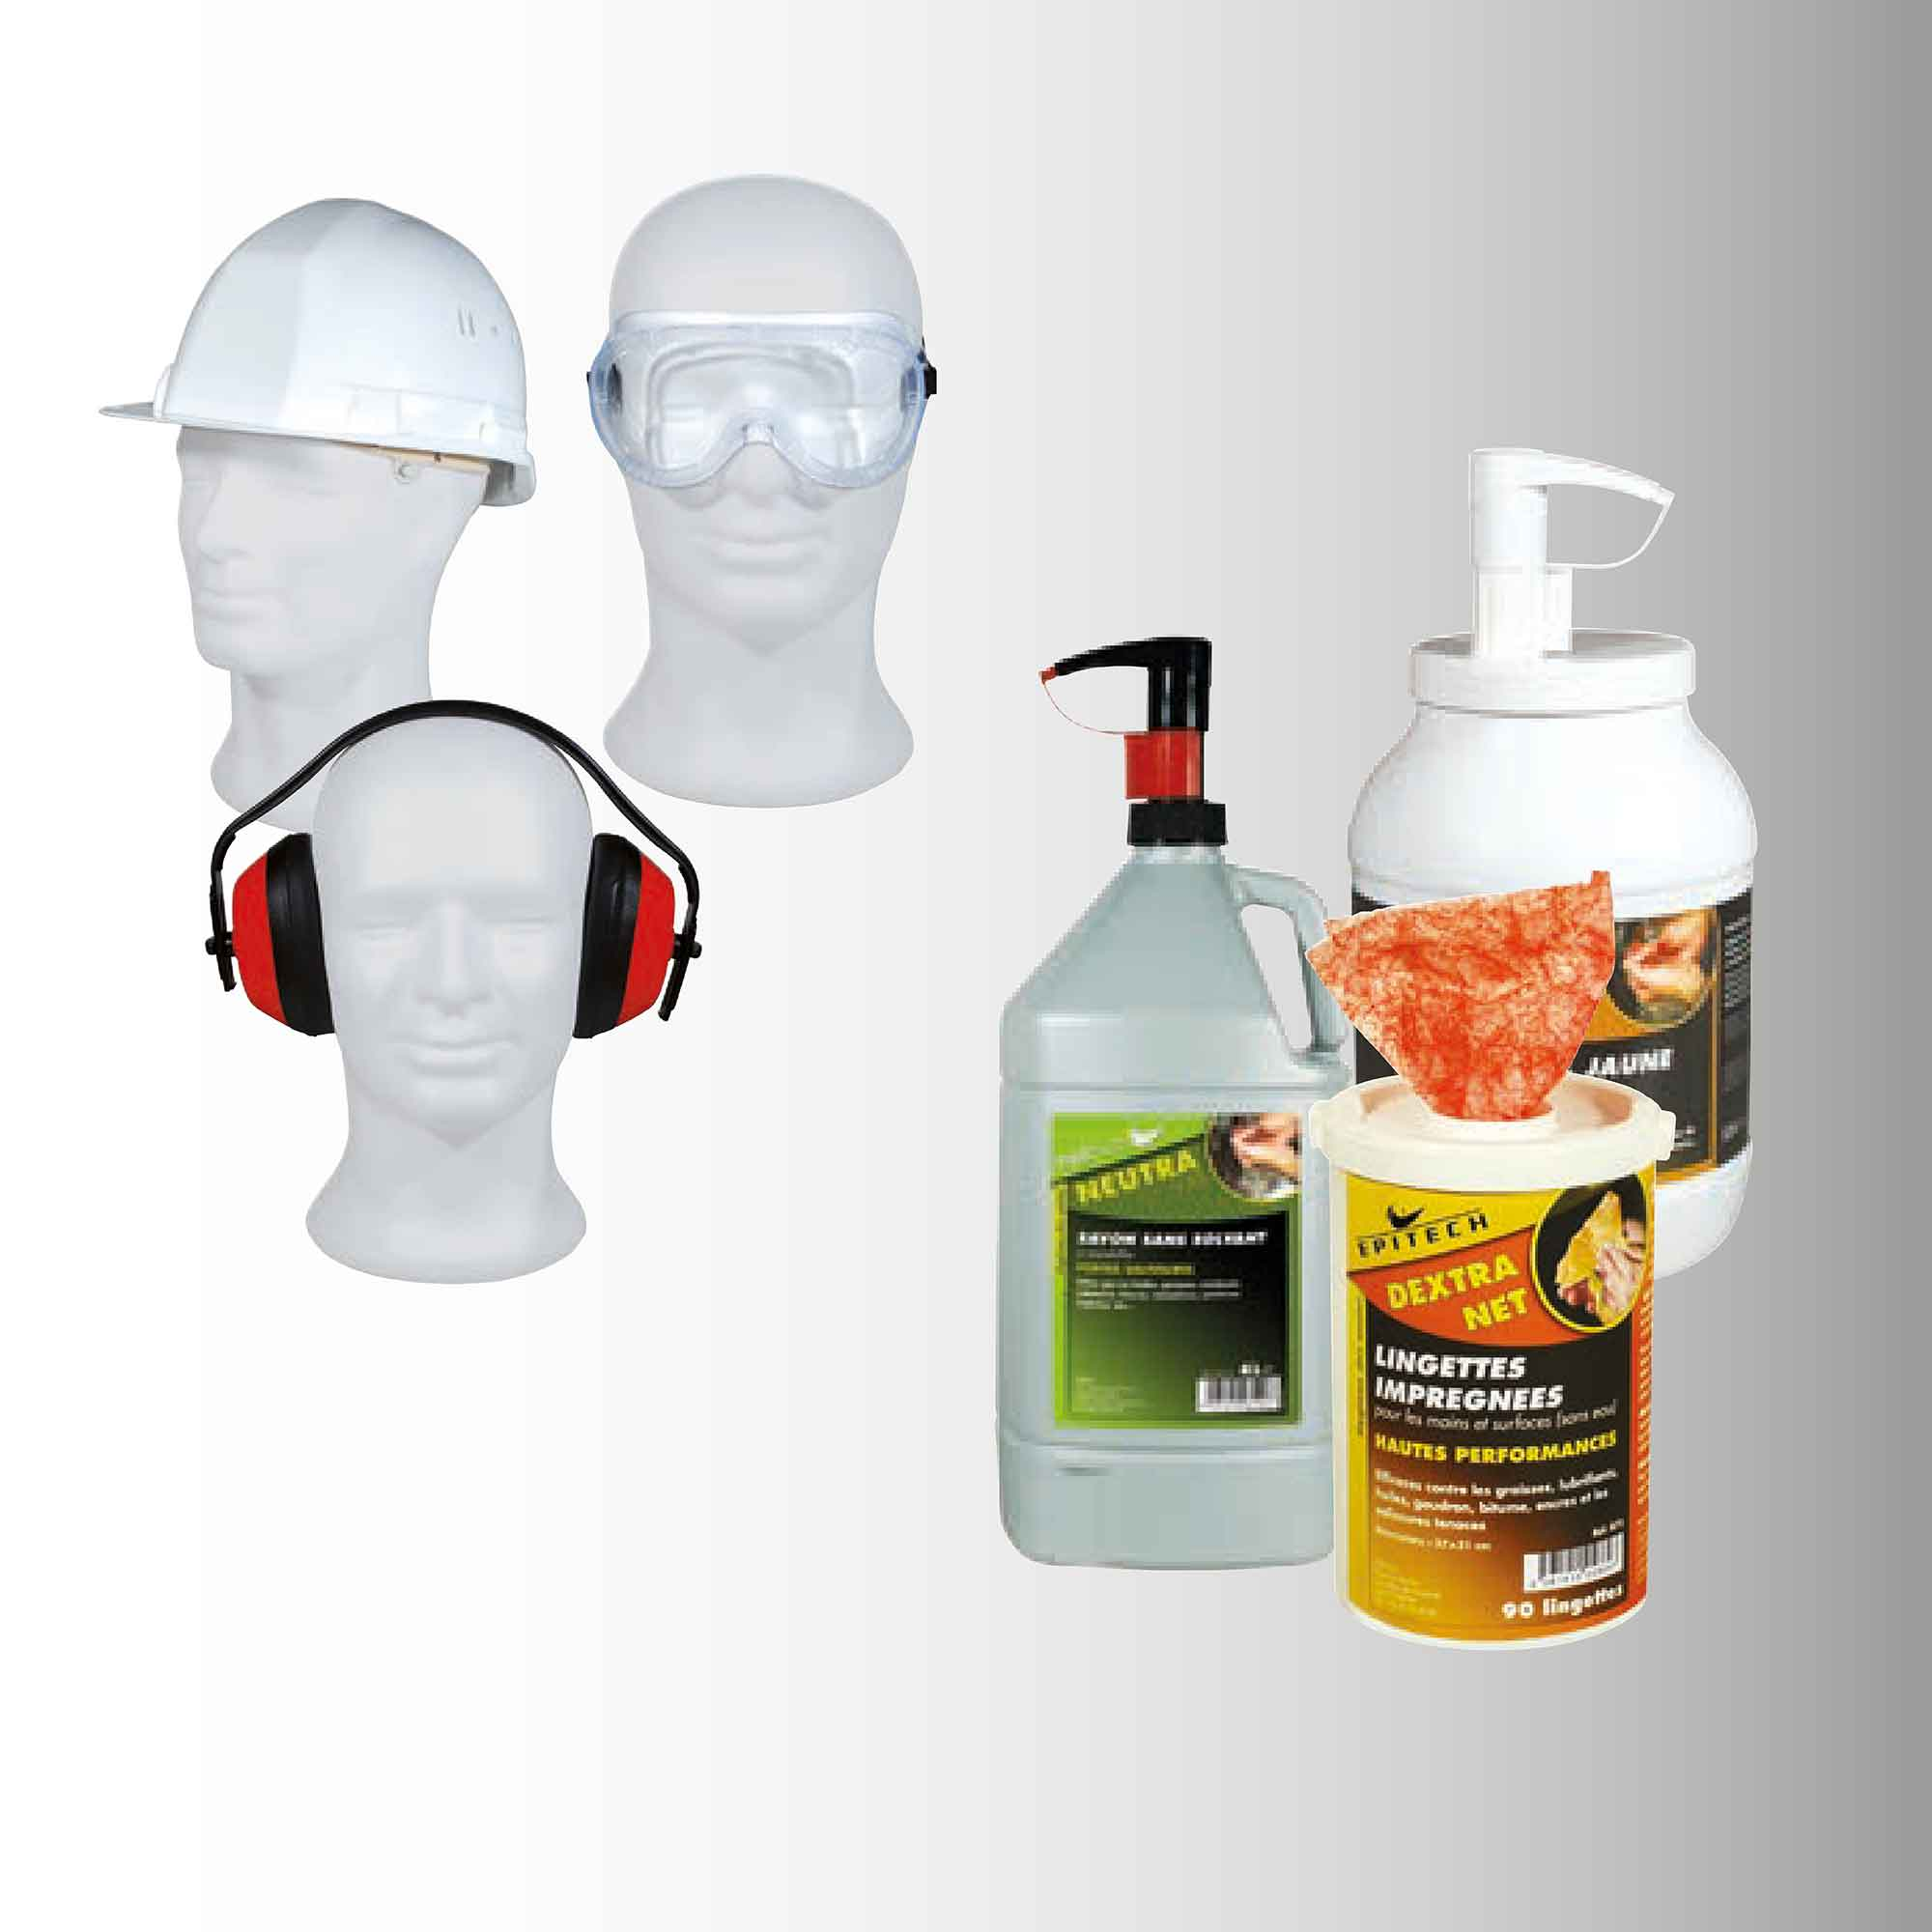 thard-protection-chantier-personne-hygiene